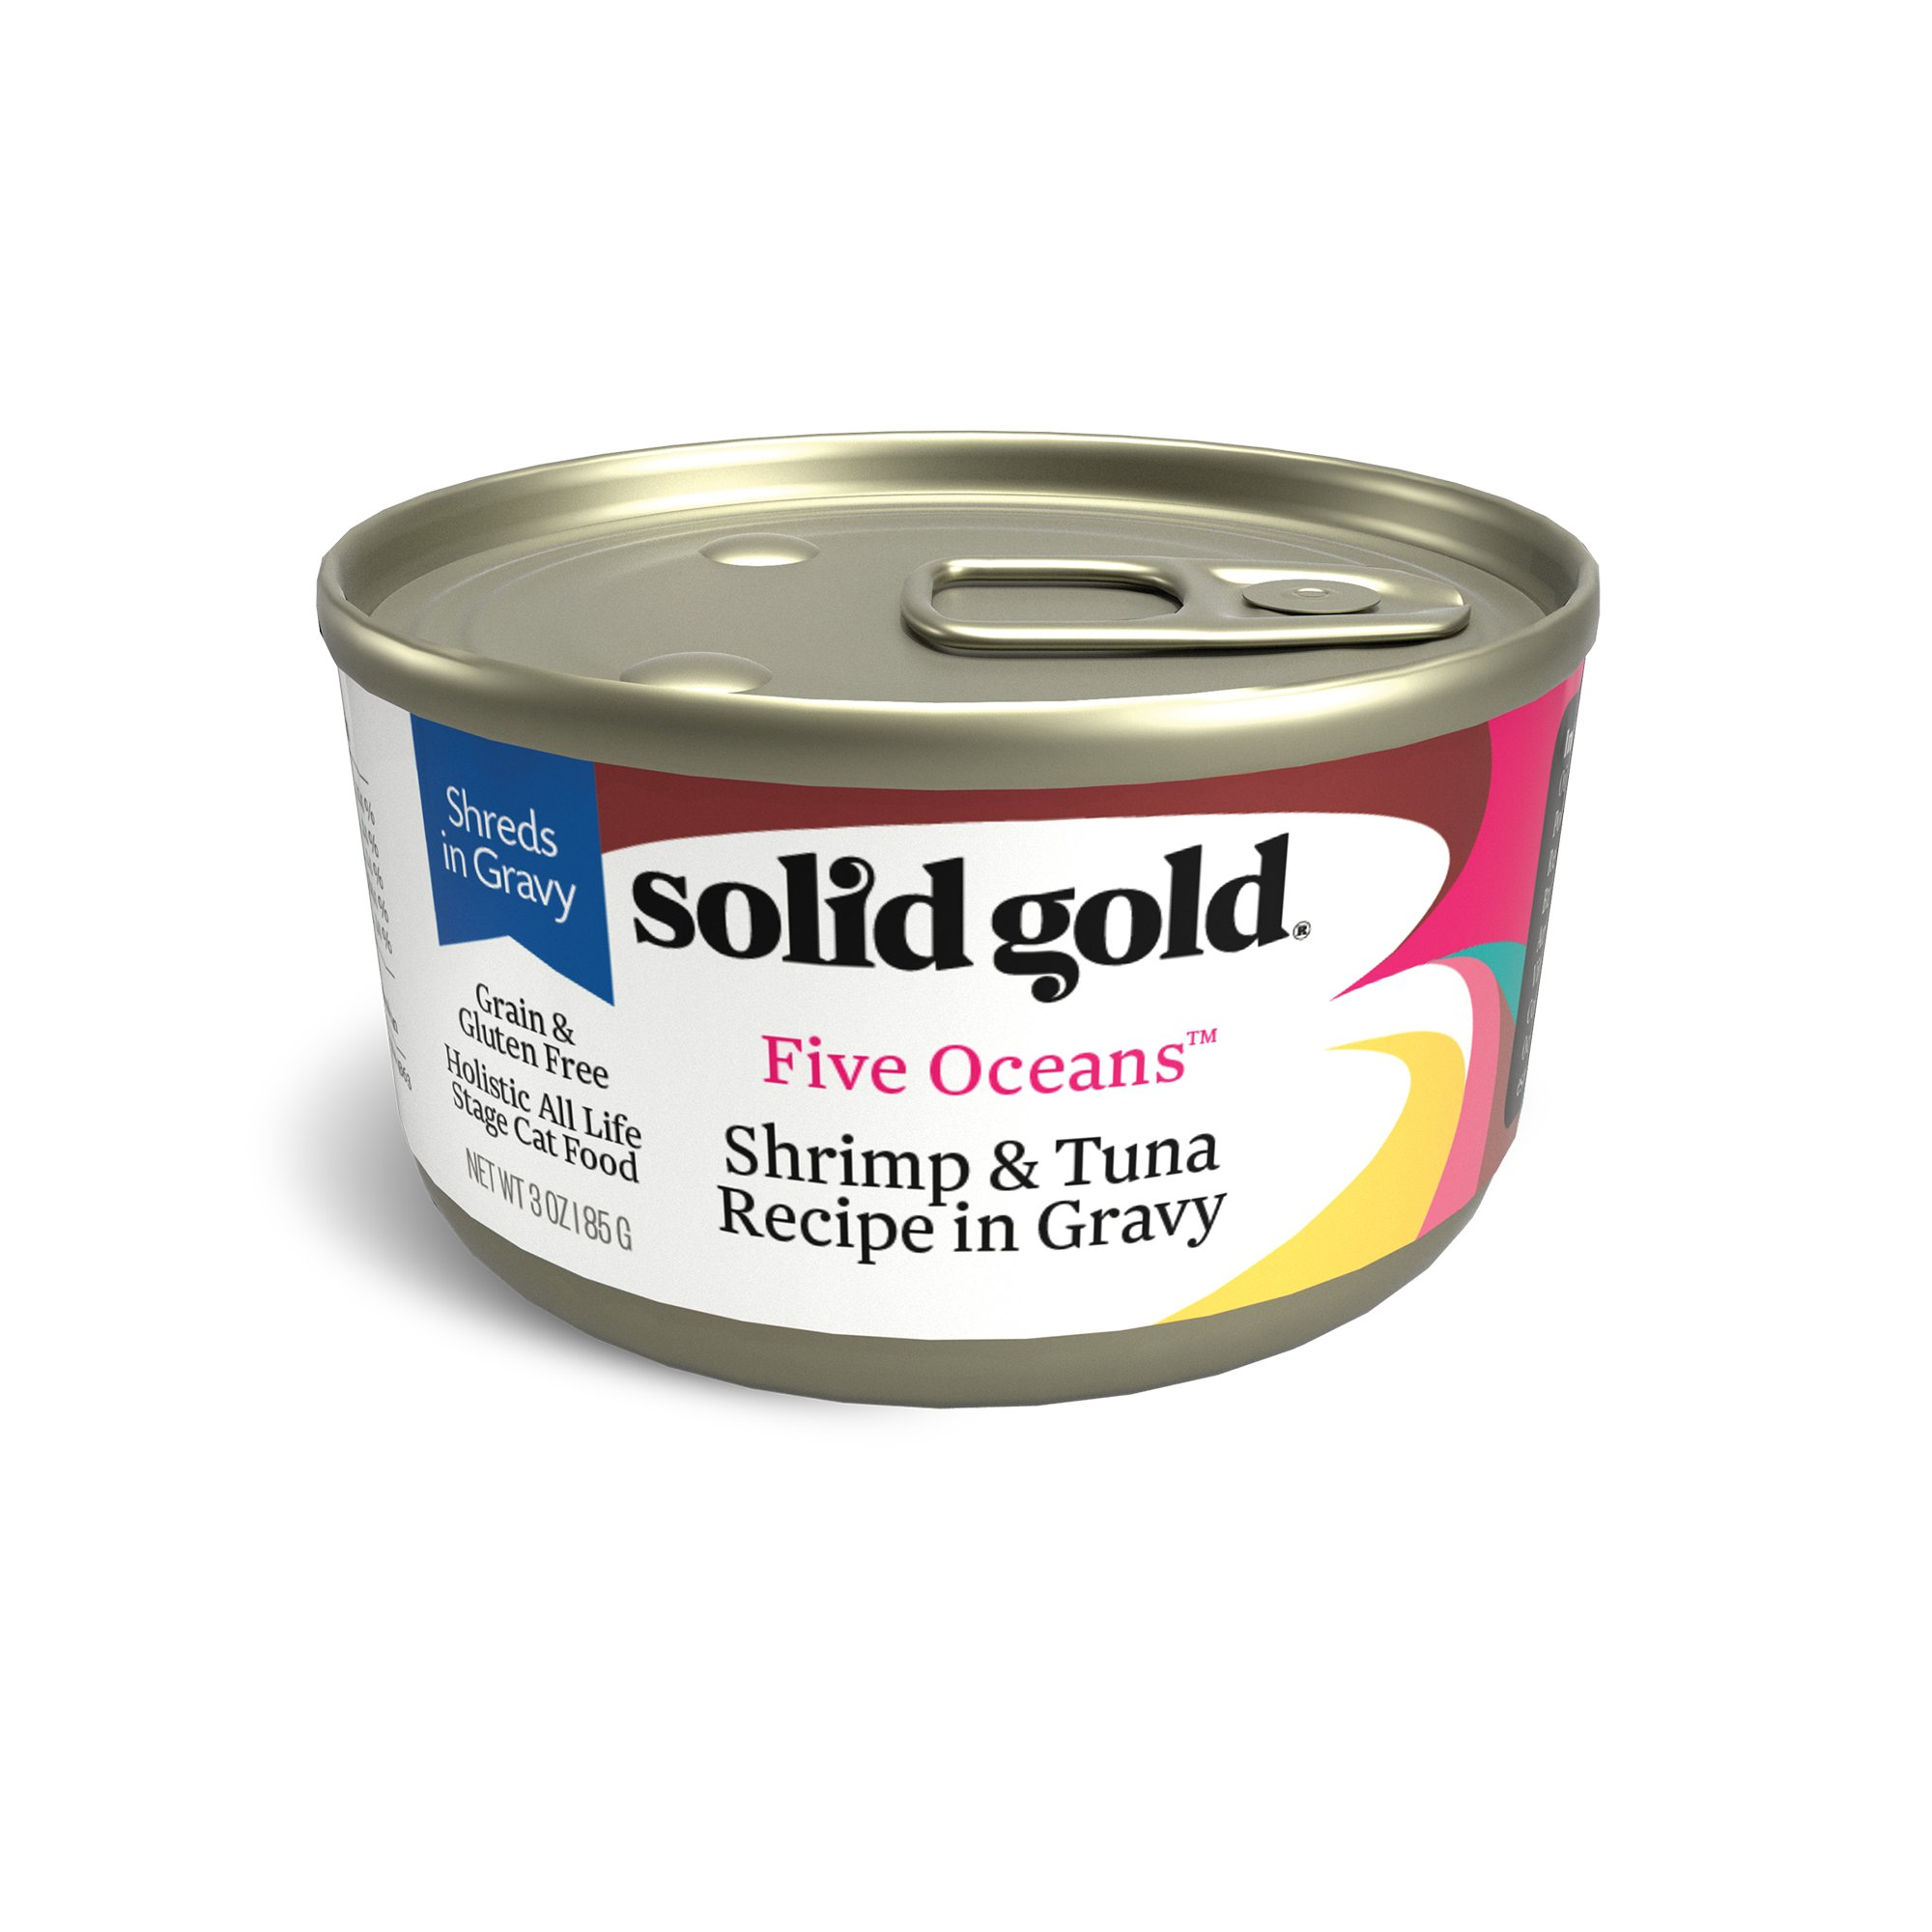 Solid Gold Shreds In Gravy Wet Cat Food; Five Oceans With Real Shrimp & Tuna, 24Ct/3Oz Can by Solid Gold